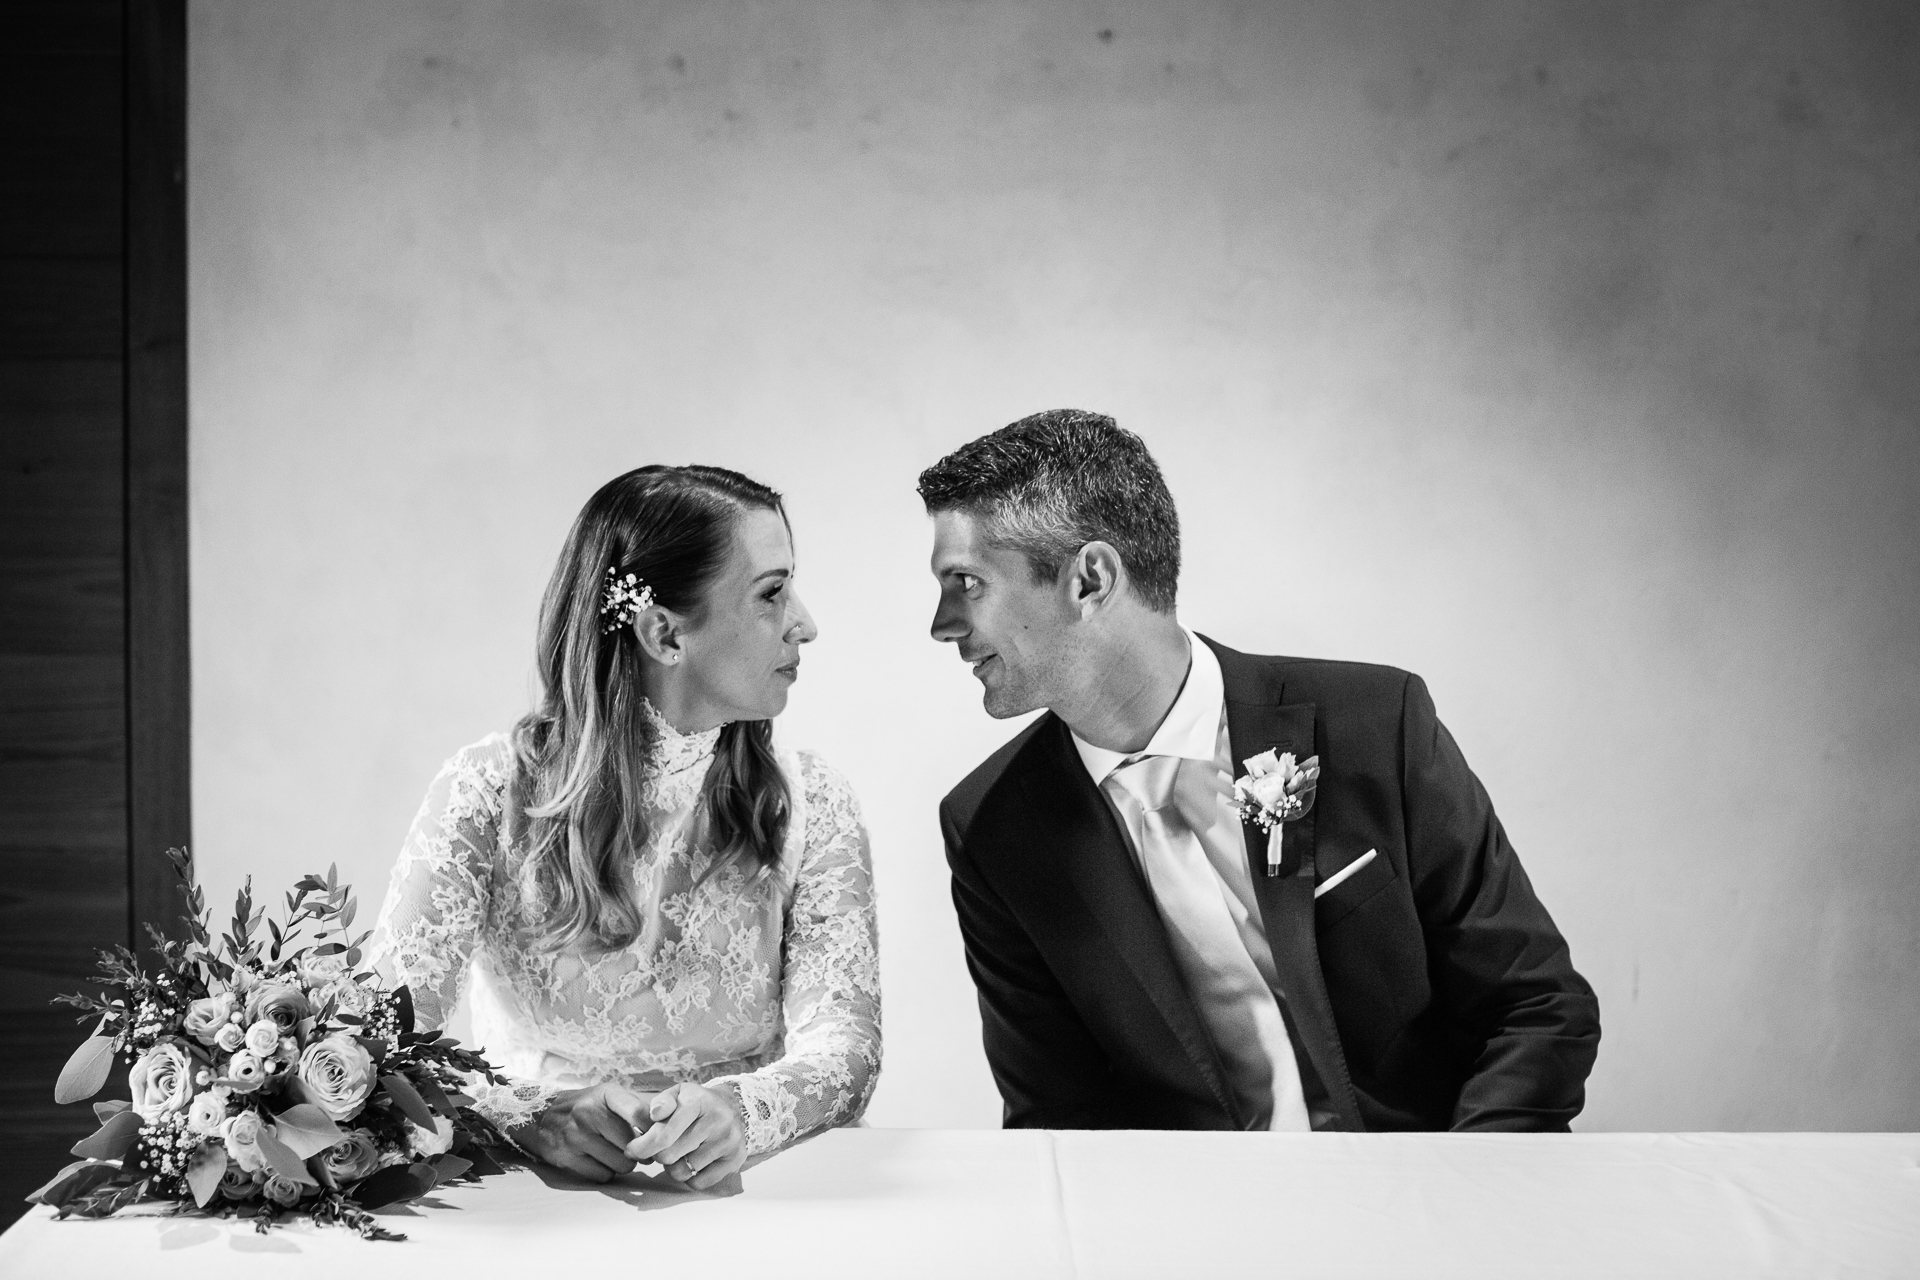 CH Elopement Image   as the couple is seated at the table where they will be married, the groom leans over to the bride